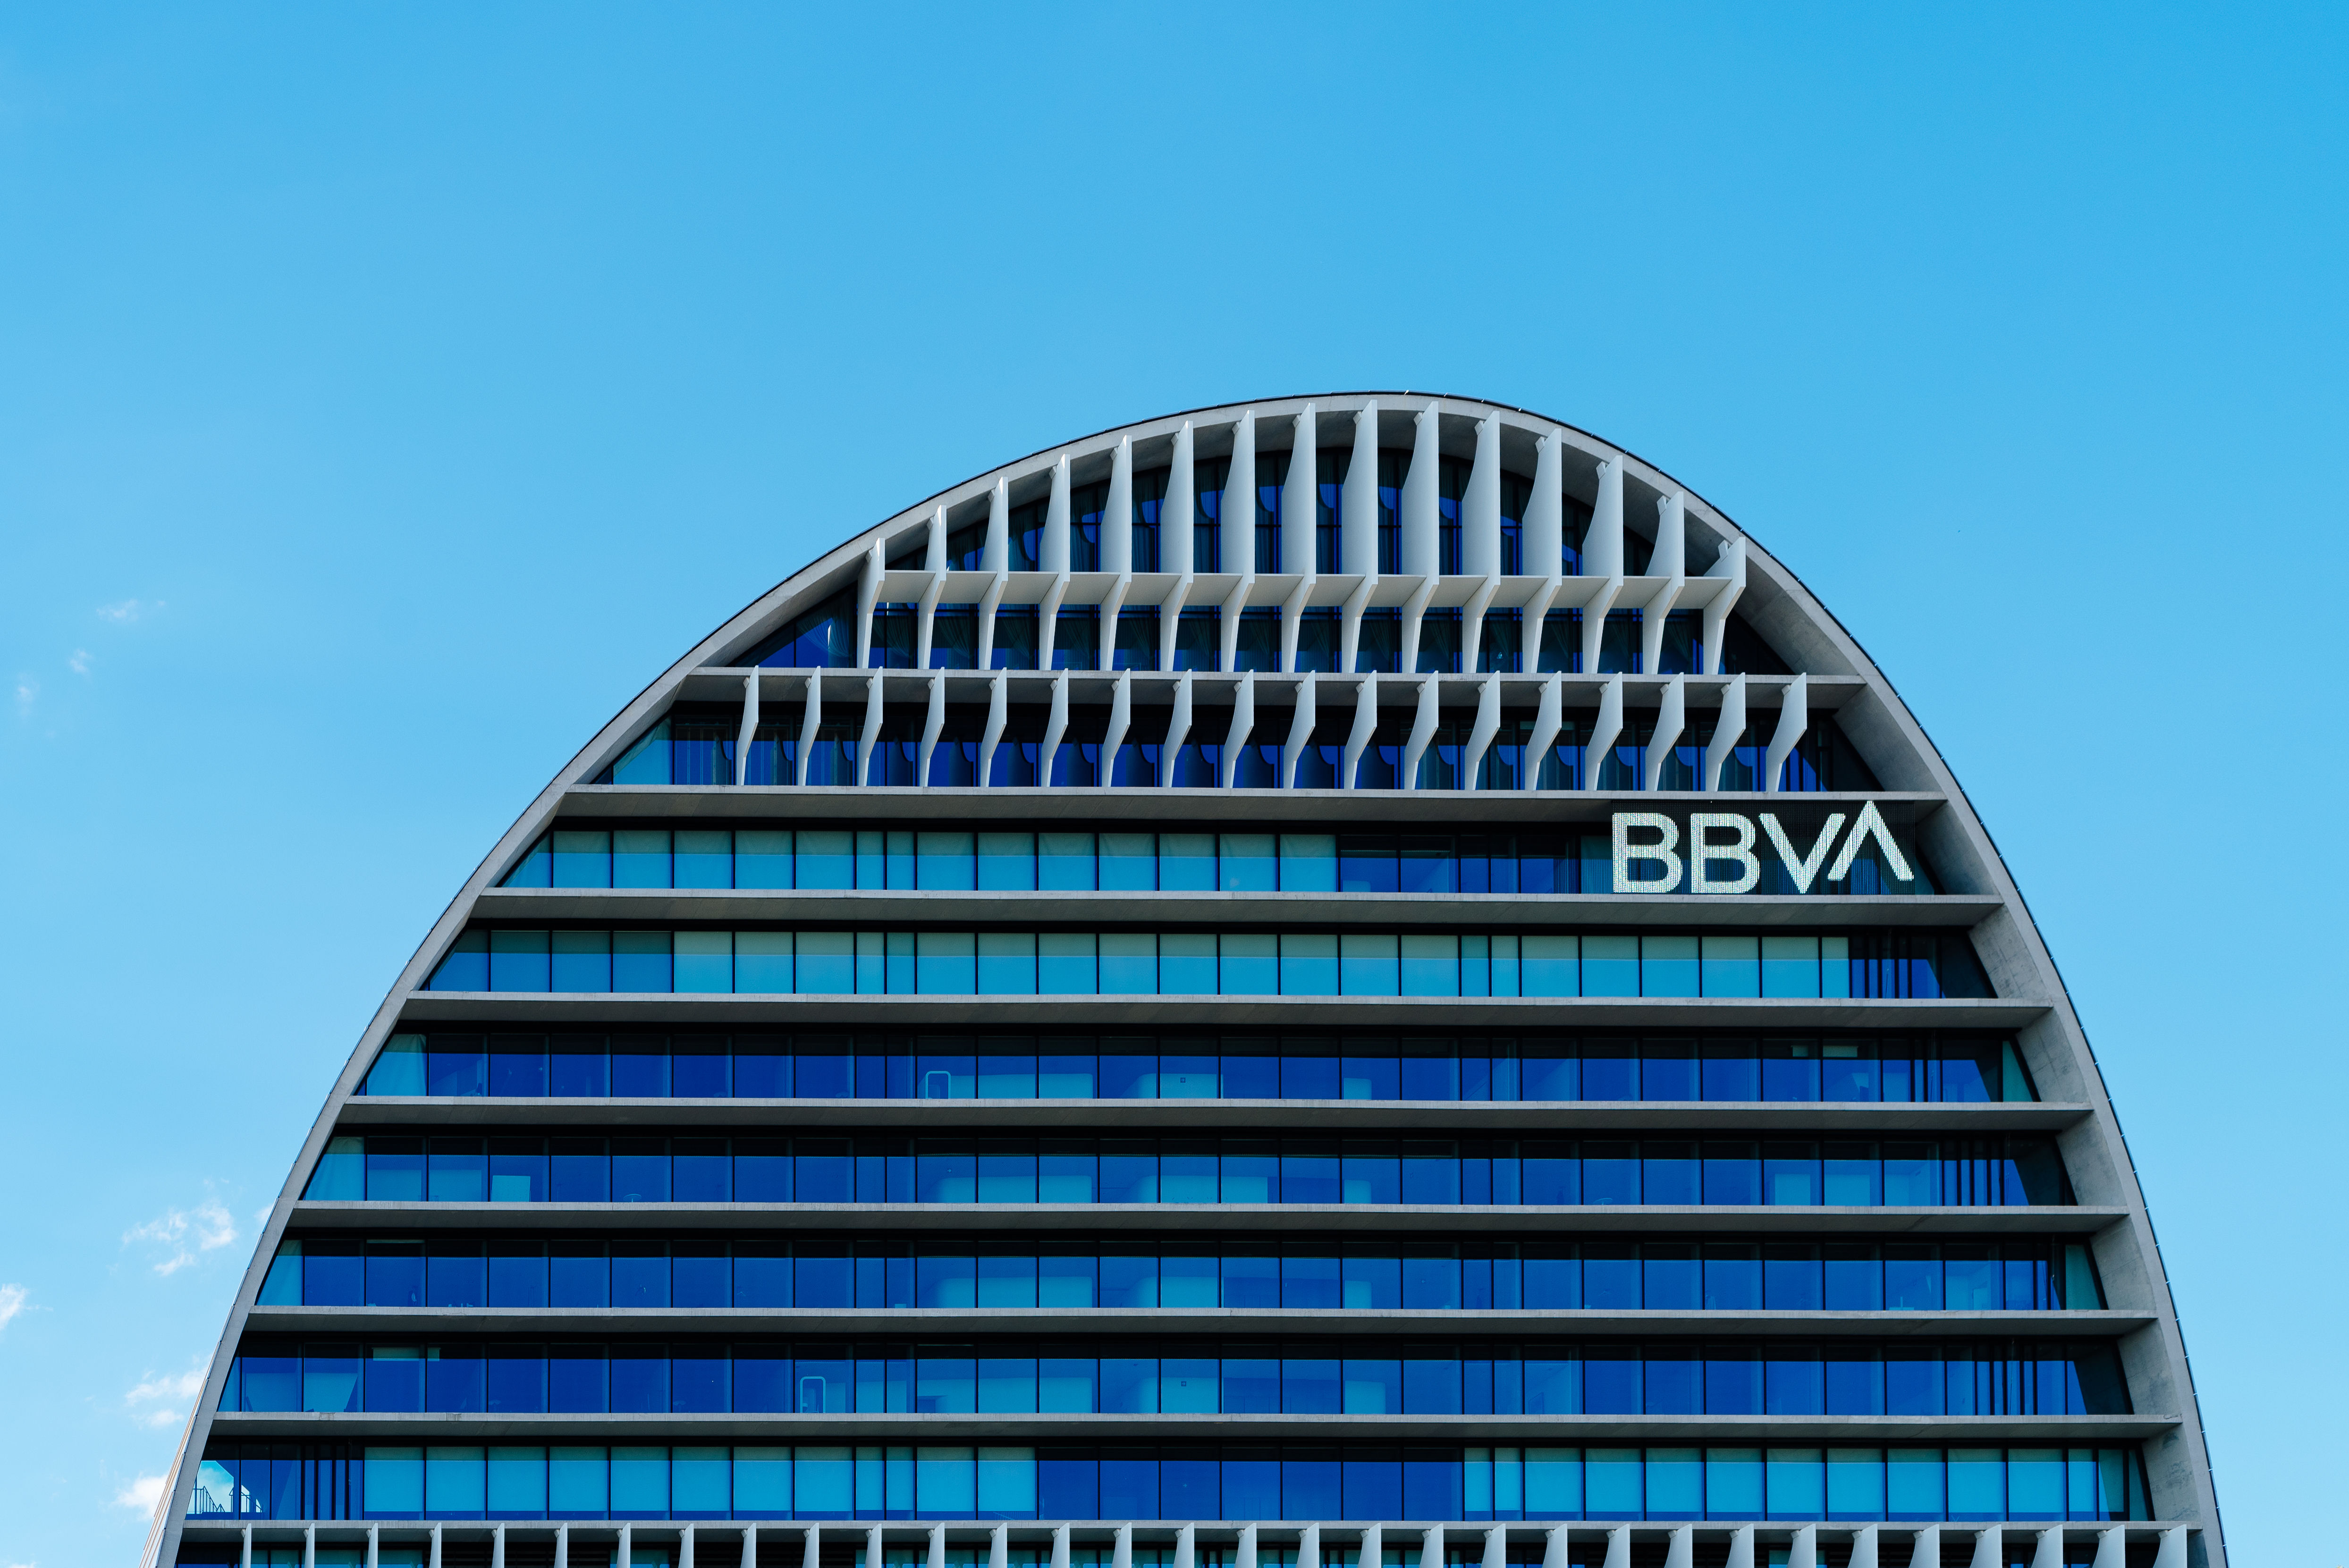 Banking giant BBVA opens bitcoin trading and custody services in Switzerland